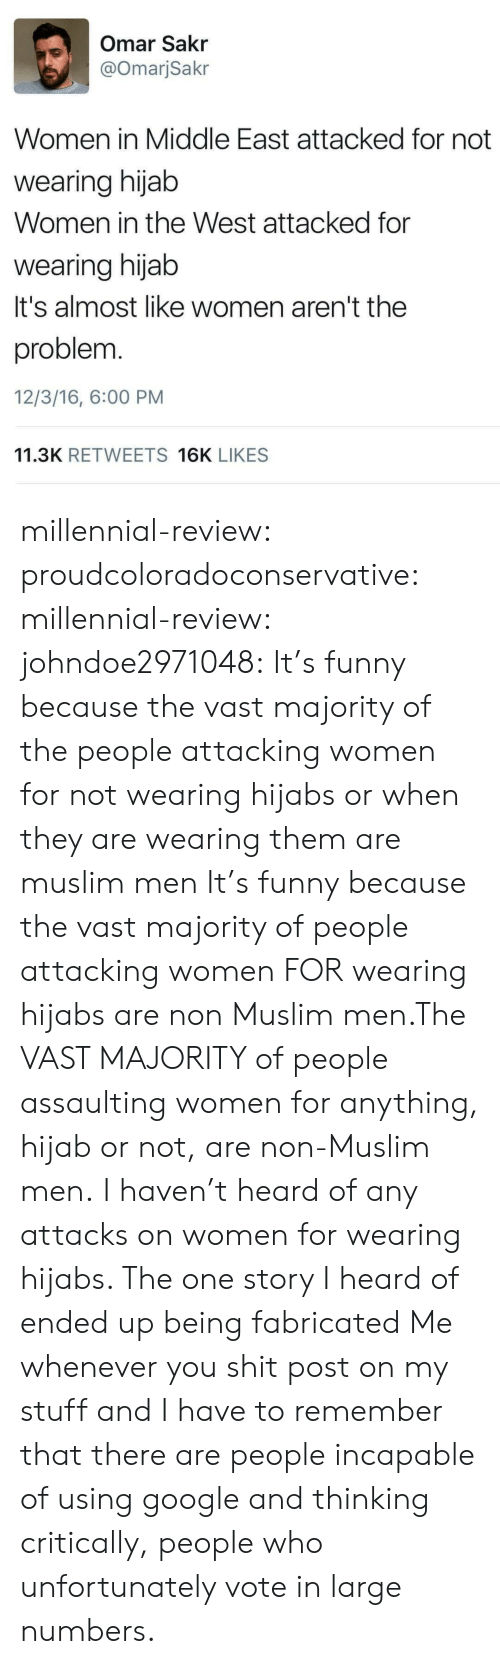 Assaulting: Omar Sakr  @OmarjSakr  Women in Middle East attacked for not  wearing hijab  Women in the West attacked for  wearing hijab  It's almost like women aren't the  problem.  12/3/16, 6:00 PM  11.3K RETWEETS 16K LIKES millennial-review:  proudcoloradoconservative:  millennial-review:  johndoe2971048:  It's funny because the vast majority of the people attacking women for not wearing hijabs or when they are wearing them are muslim men  It's funny because the vast majority of people attacking women FOR wearing hijabs are non Muslim men.The VAST MAJORITY of people assaulting women for anything, hijab or not, are non-Muslim men.  I haven't heard of any attacks on women for wearing hijabs. The one story I heard of ended up being fabricated  Me whenever you shit post on my stuff and I have to remember that there are people incapable of using google and thinking critically, people who unfortunately vote in large numbers.